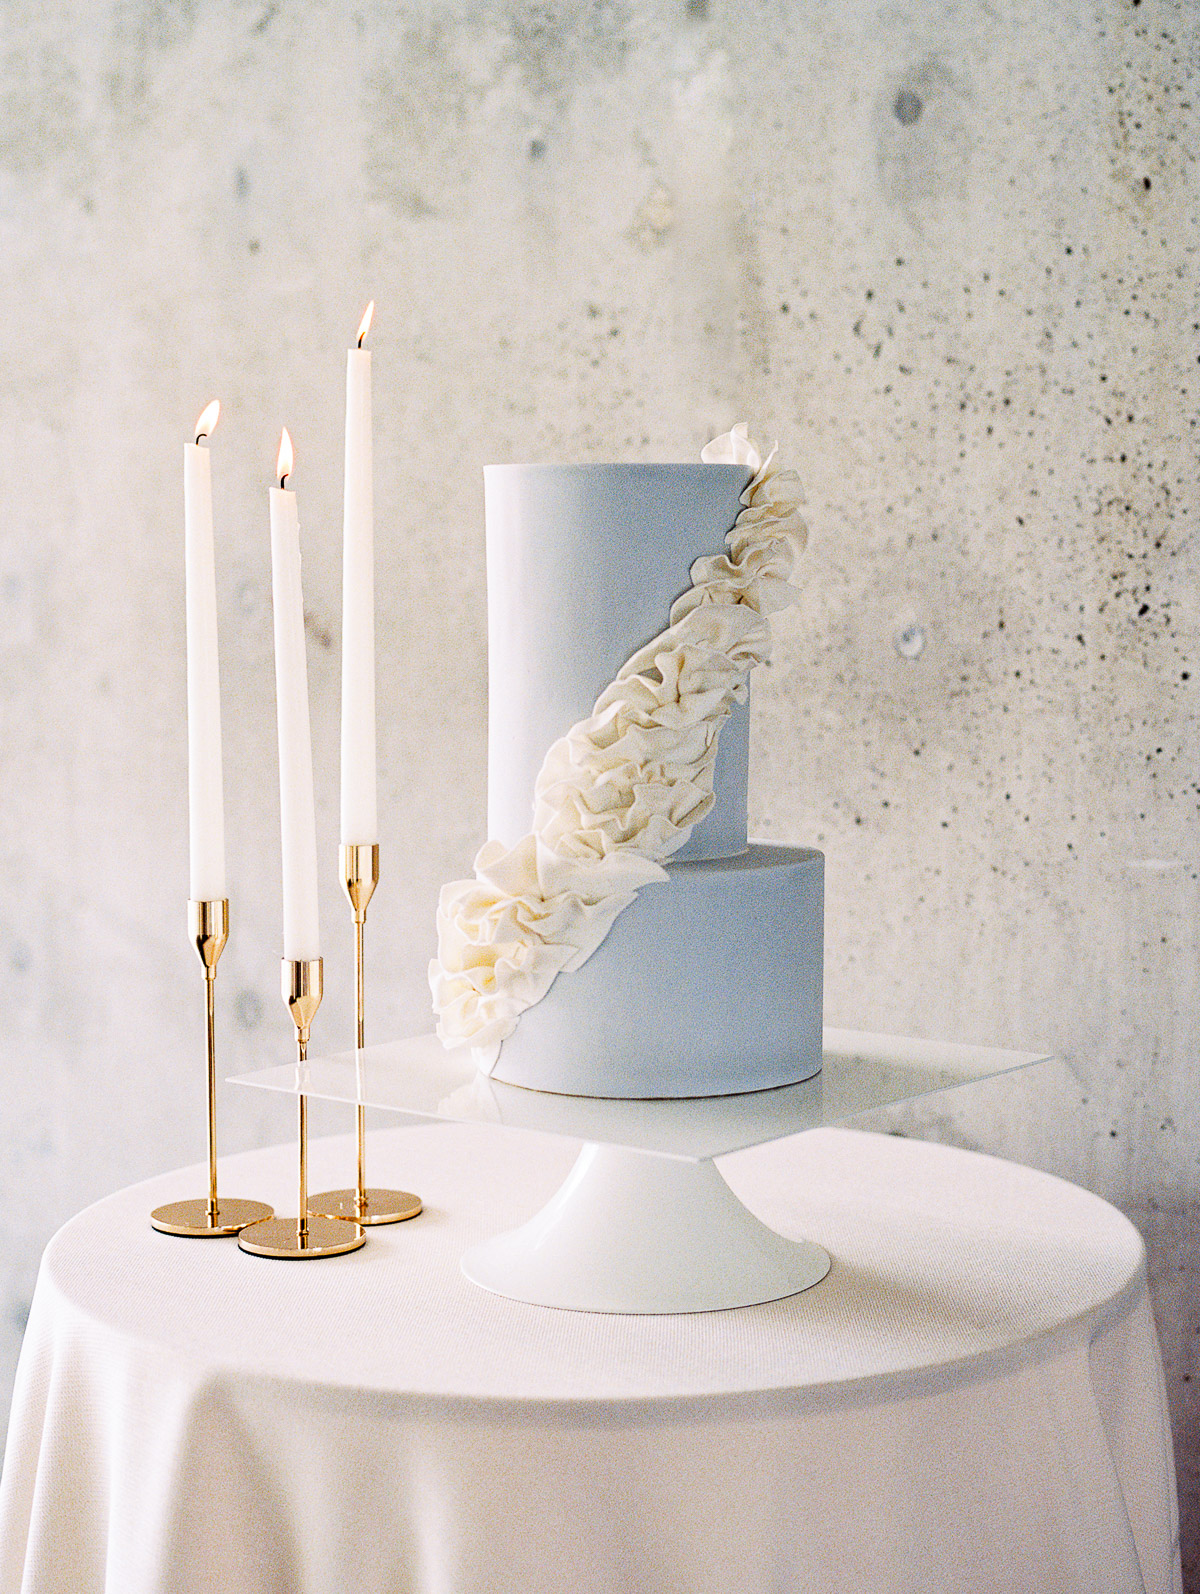 A modern and urban inspired wedding cake sits atop a well laid tables with tall candles